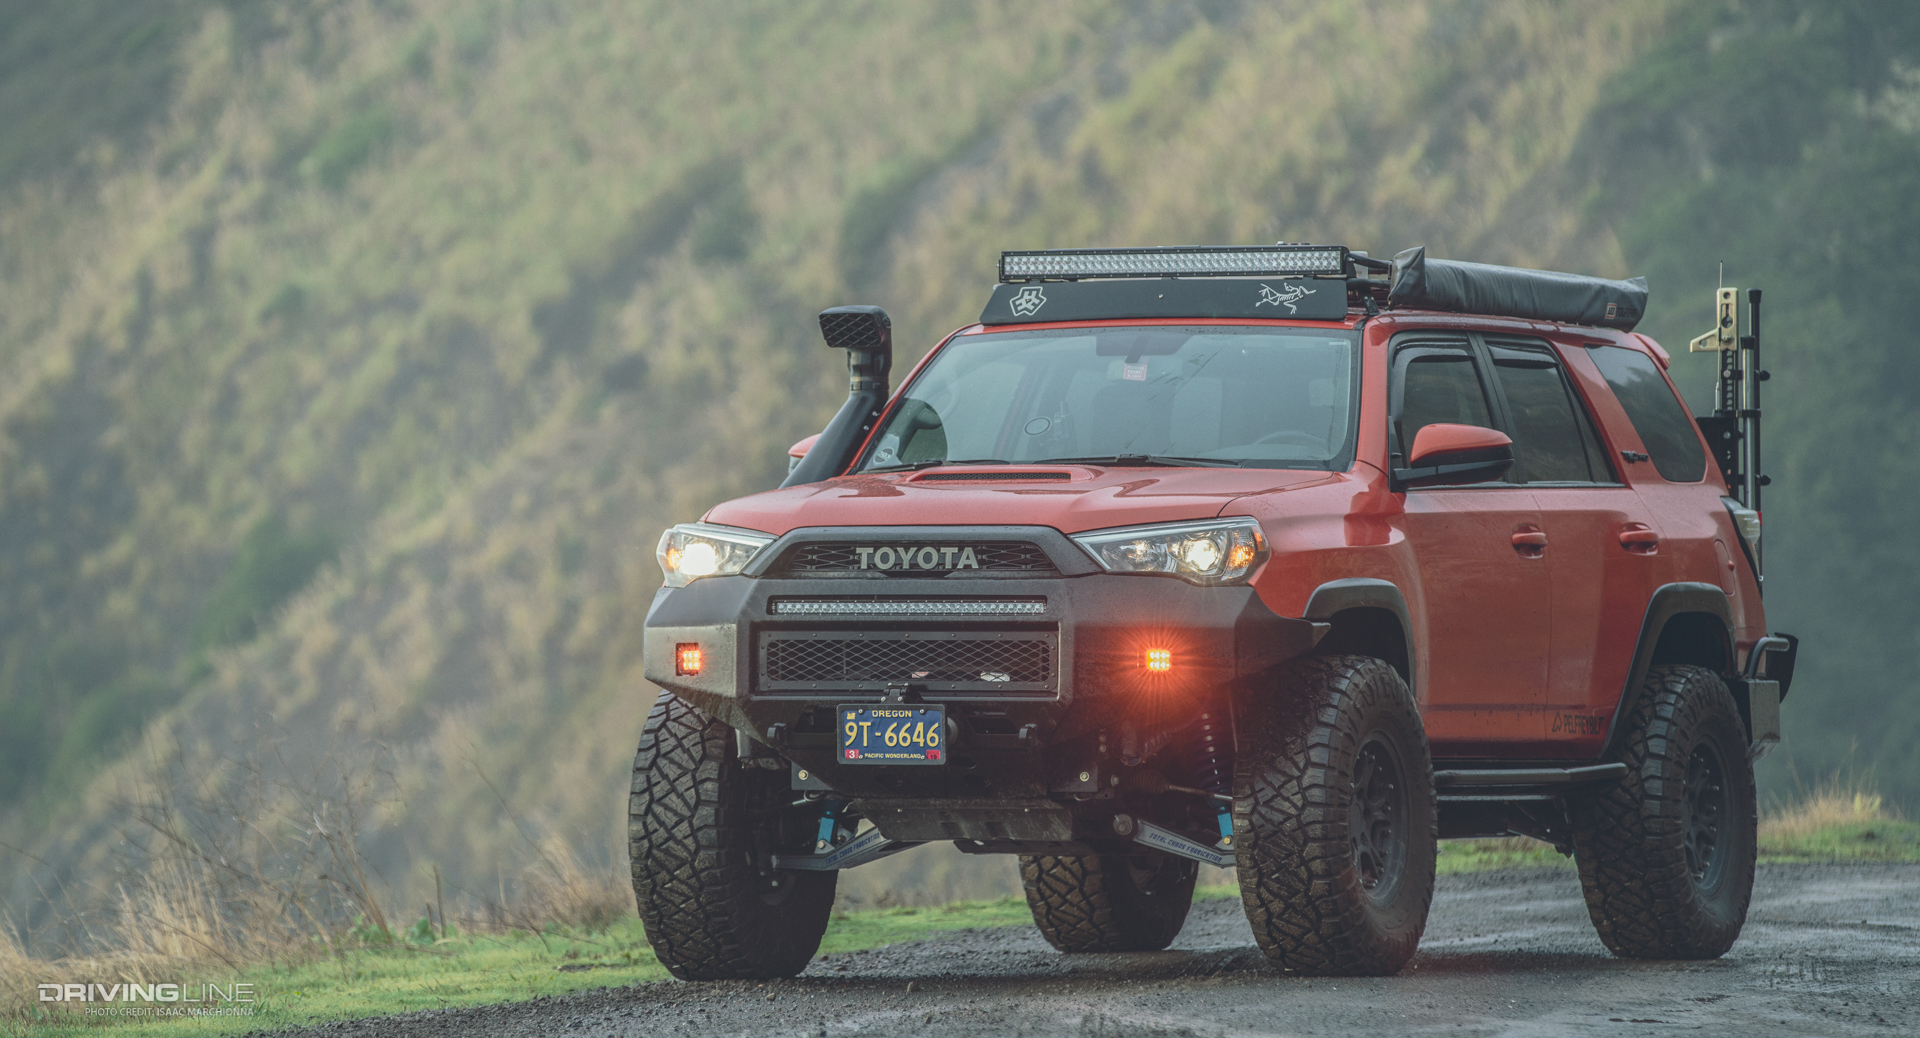 Celebrating Wanderlust With An Overlanding Equipped Toyota